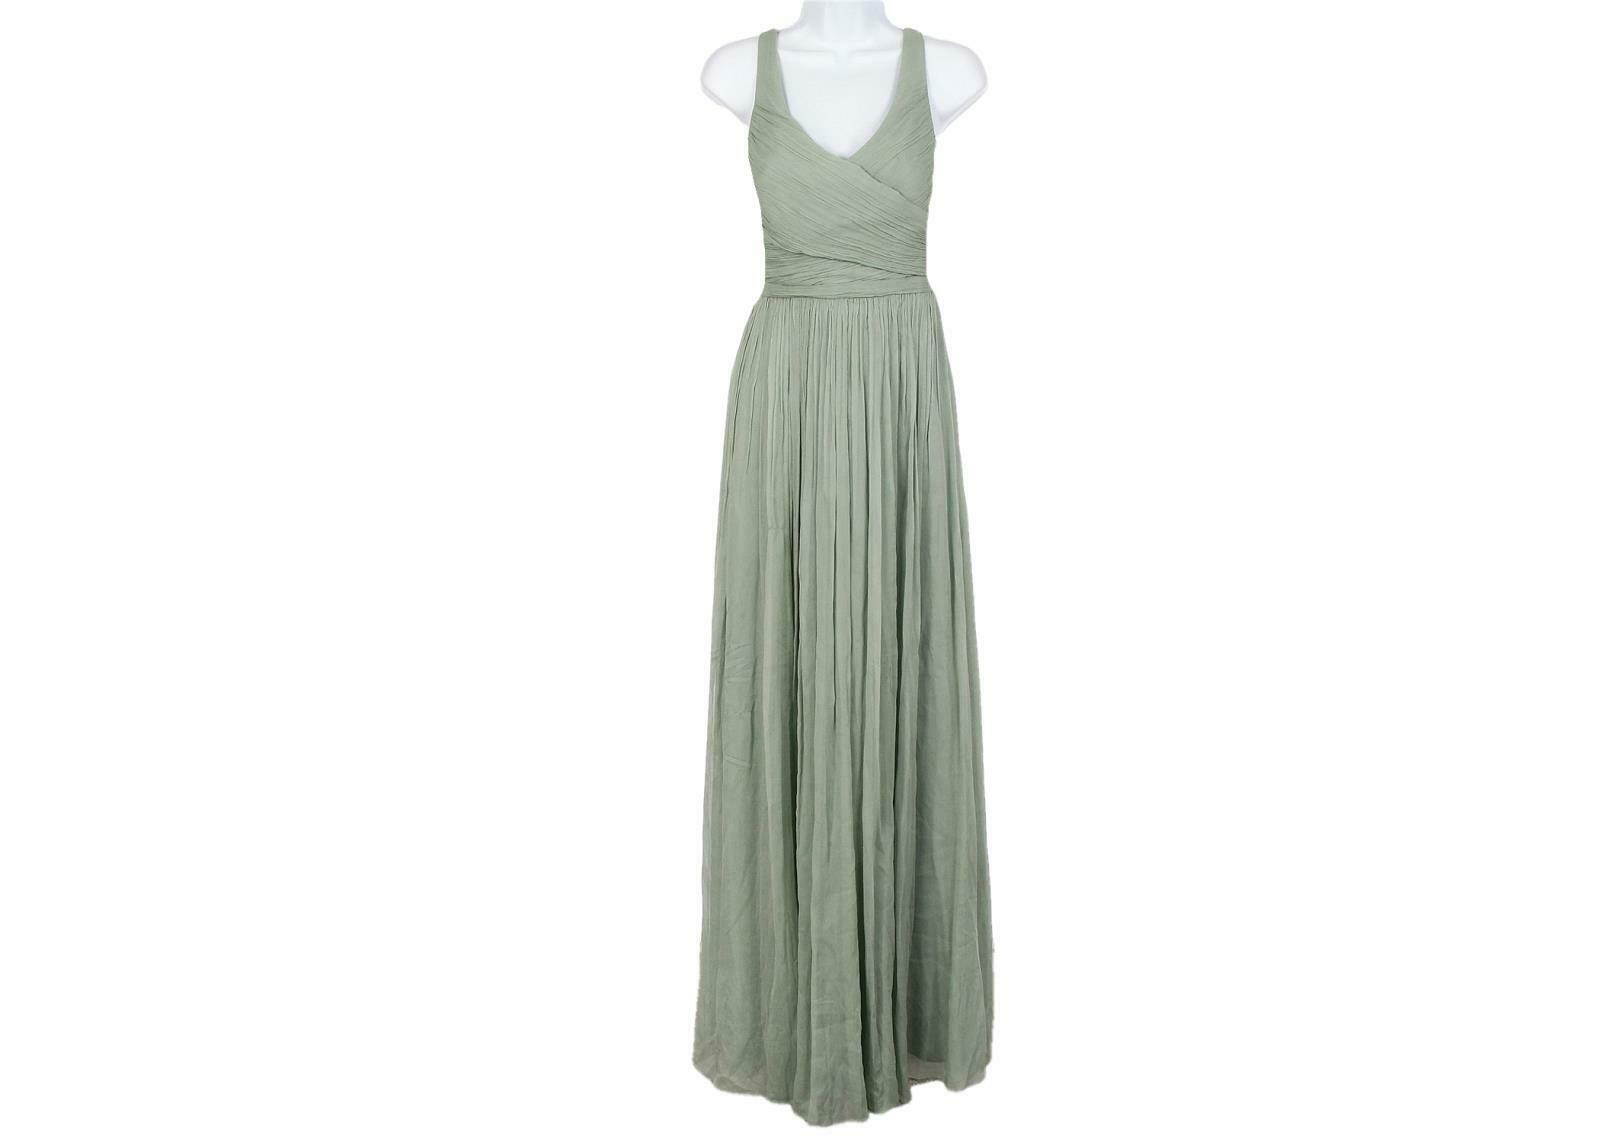 J Crew Women's Heidi Long Dress in Silk Chiffon Dusty Shale Sz 6 93075